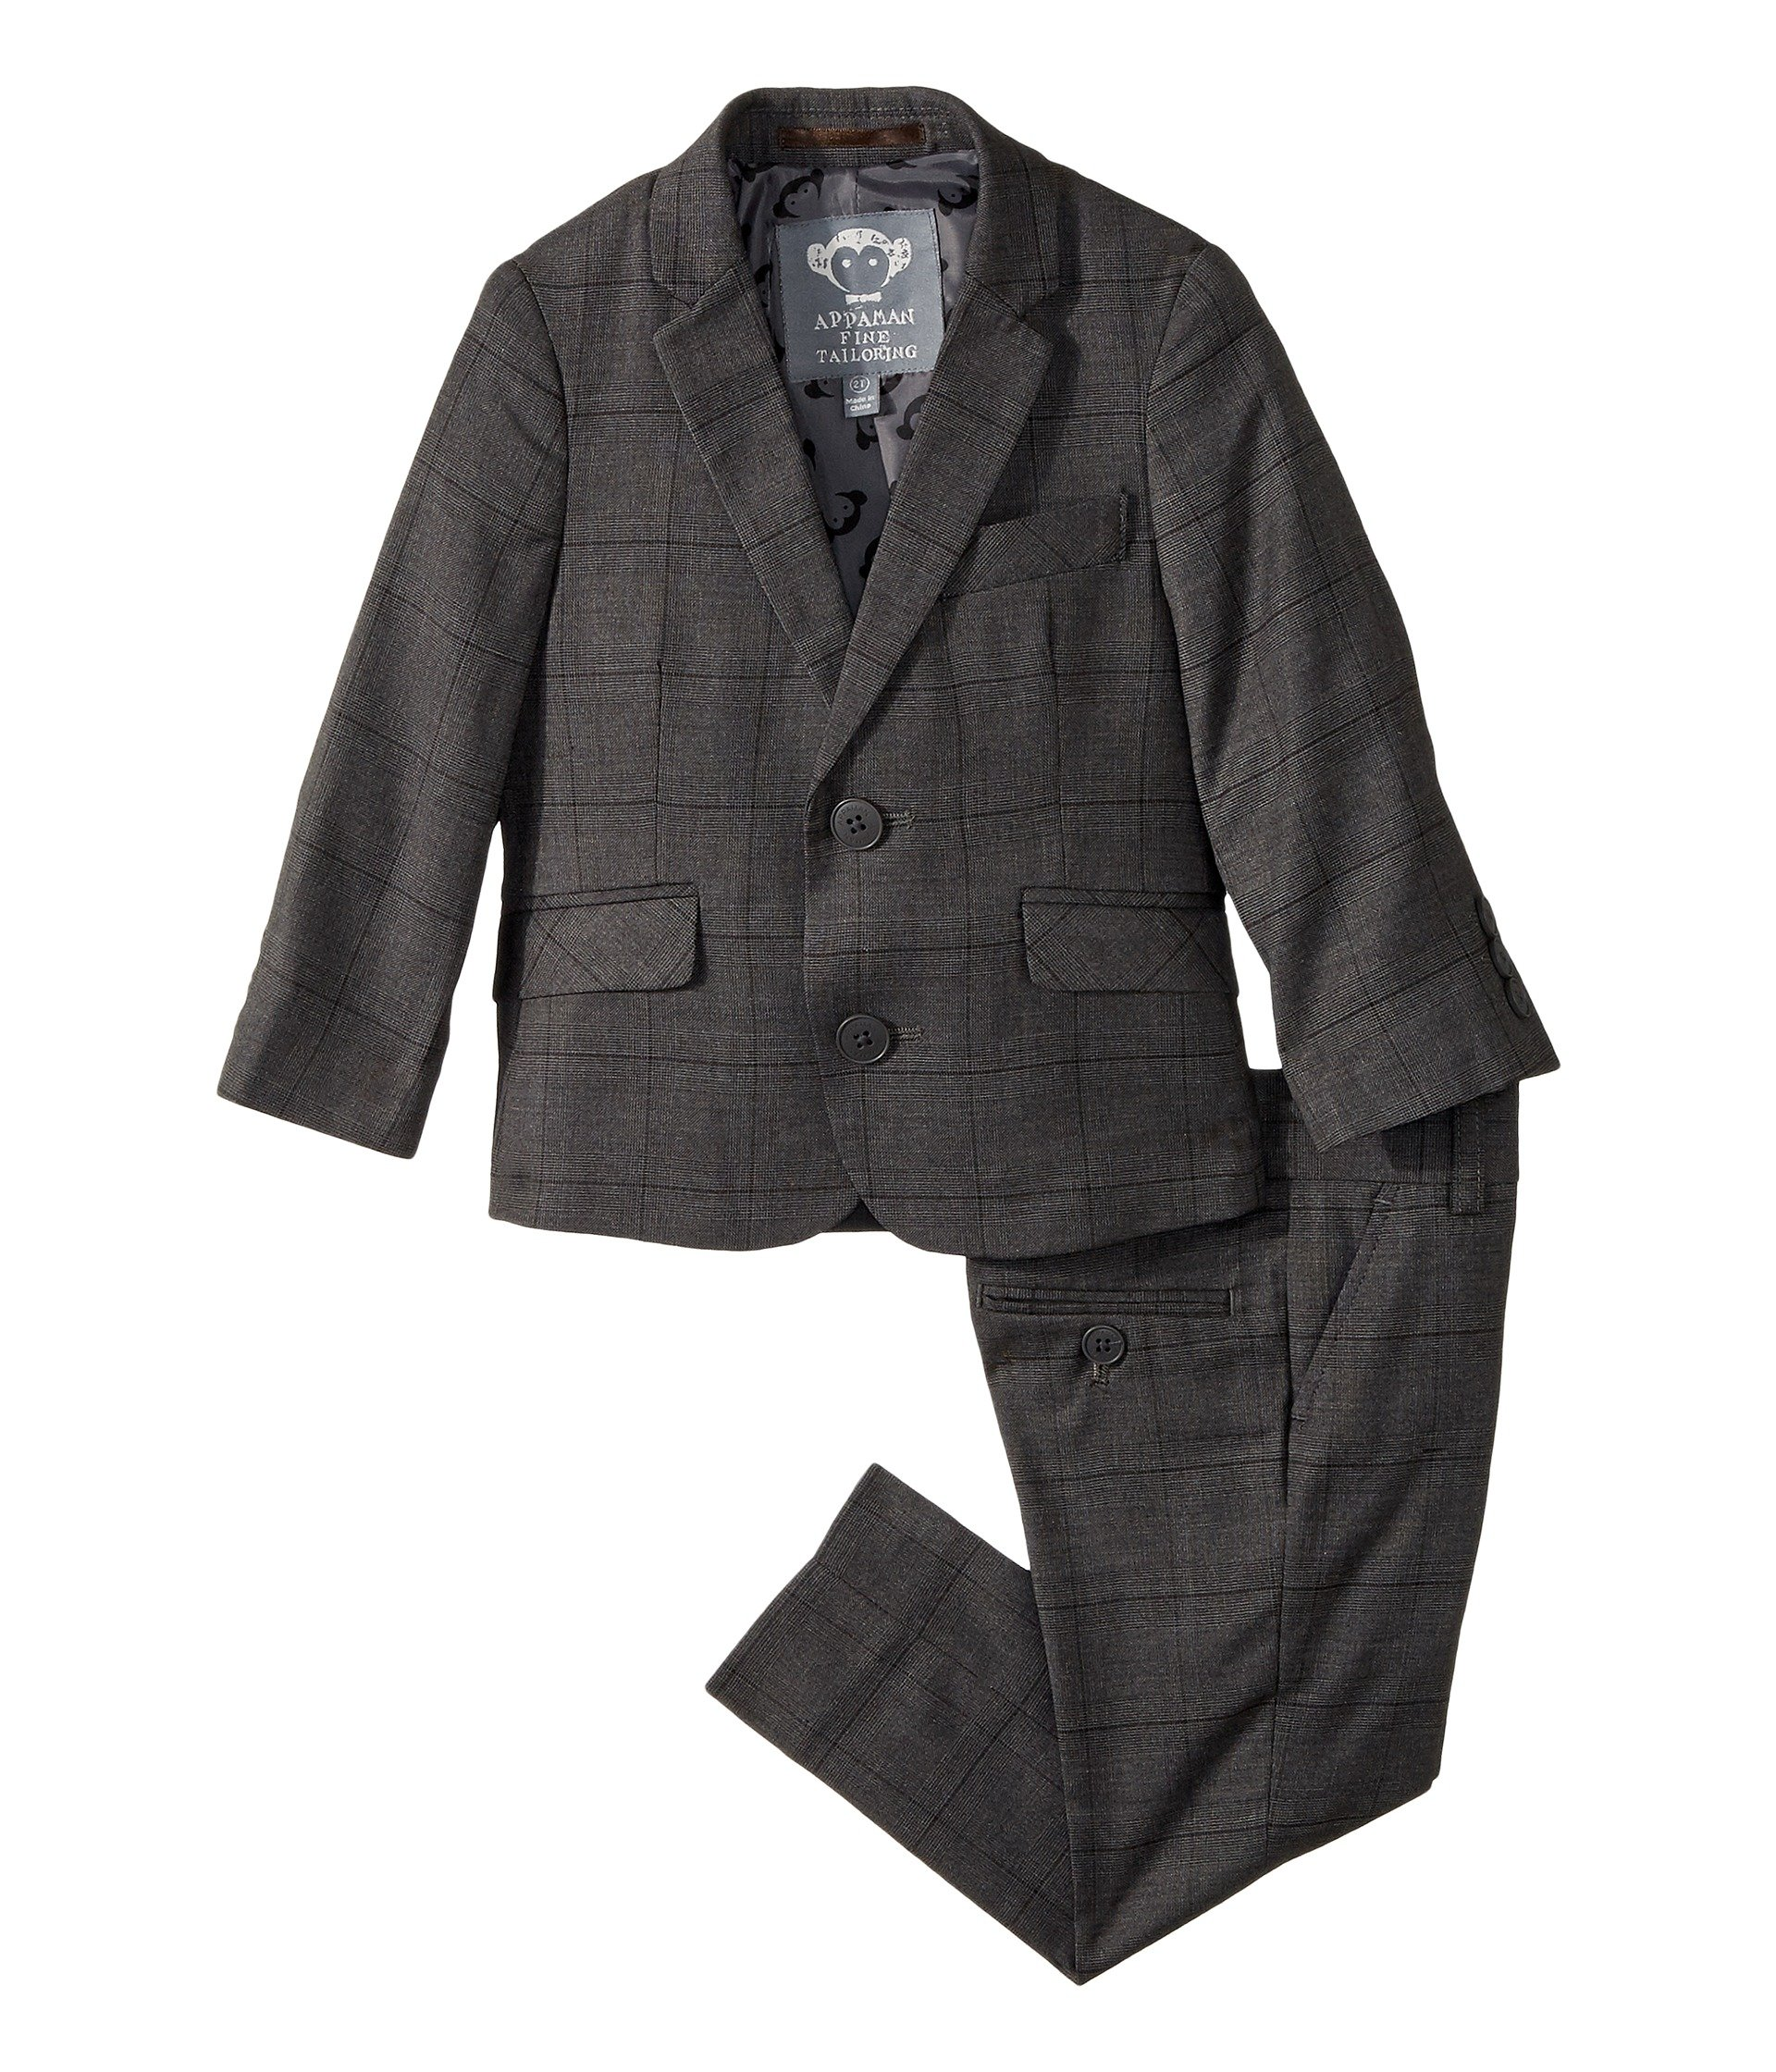 Appaman Kids Baby Boy's Two-Piece MOD Suit (Toddler/Little Kids/Big Kids) Charcoal Wales Check 16 by Appaman Kids